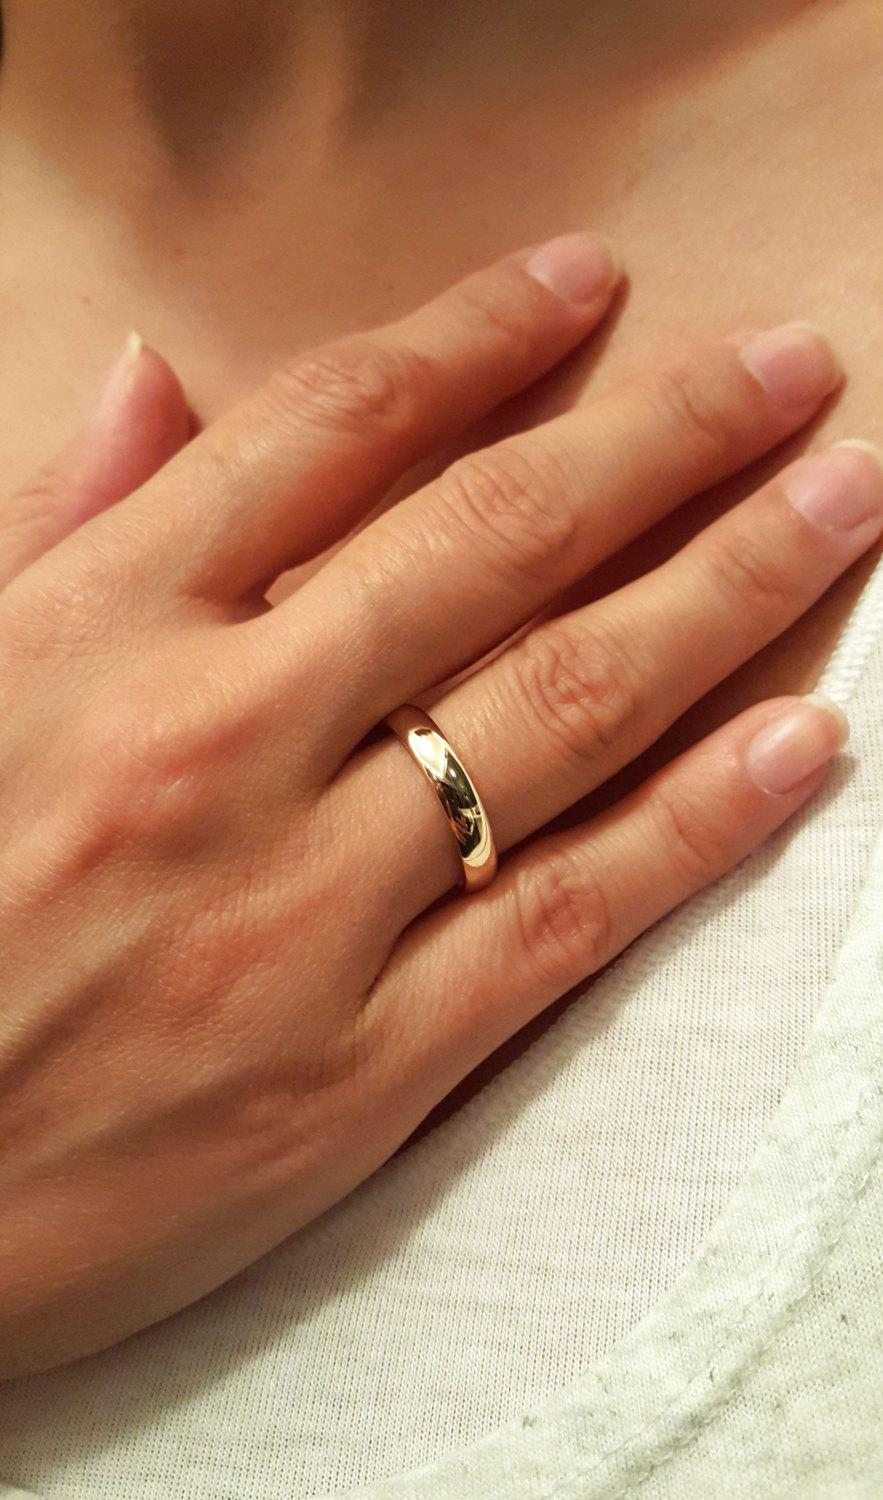 14k solid gold wedding engagement ring 14k gold his and hers men womens matching wedding bands classic wedding ring unisex wedding band - Classic Wedding Rings